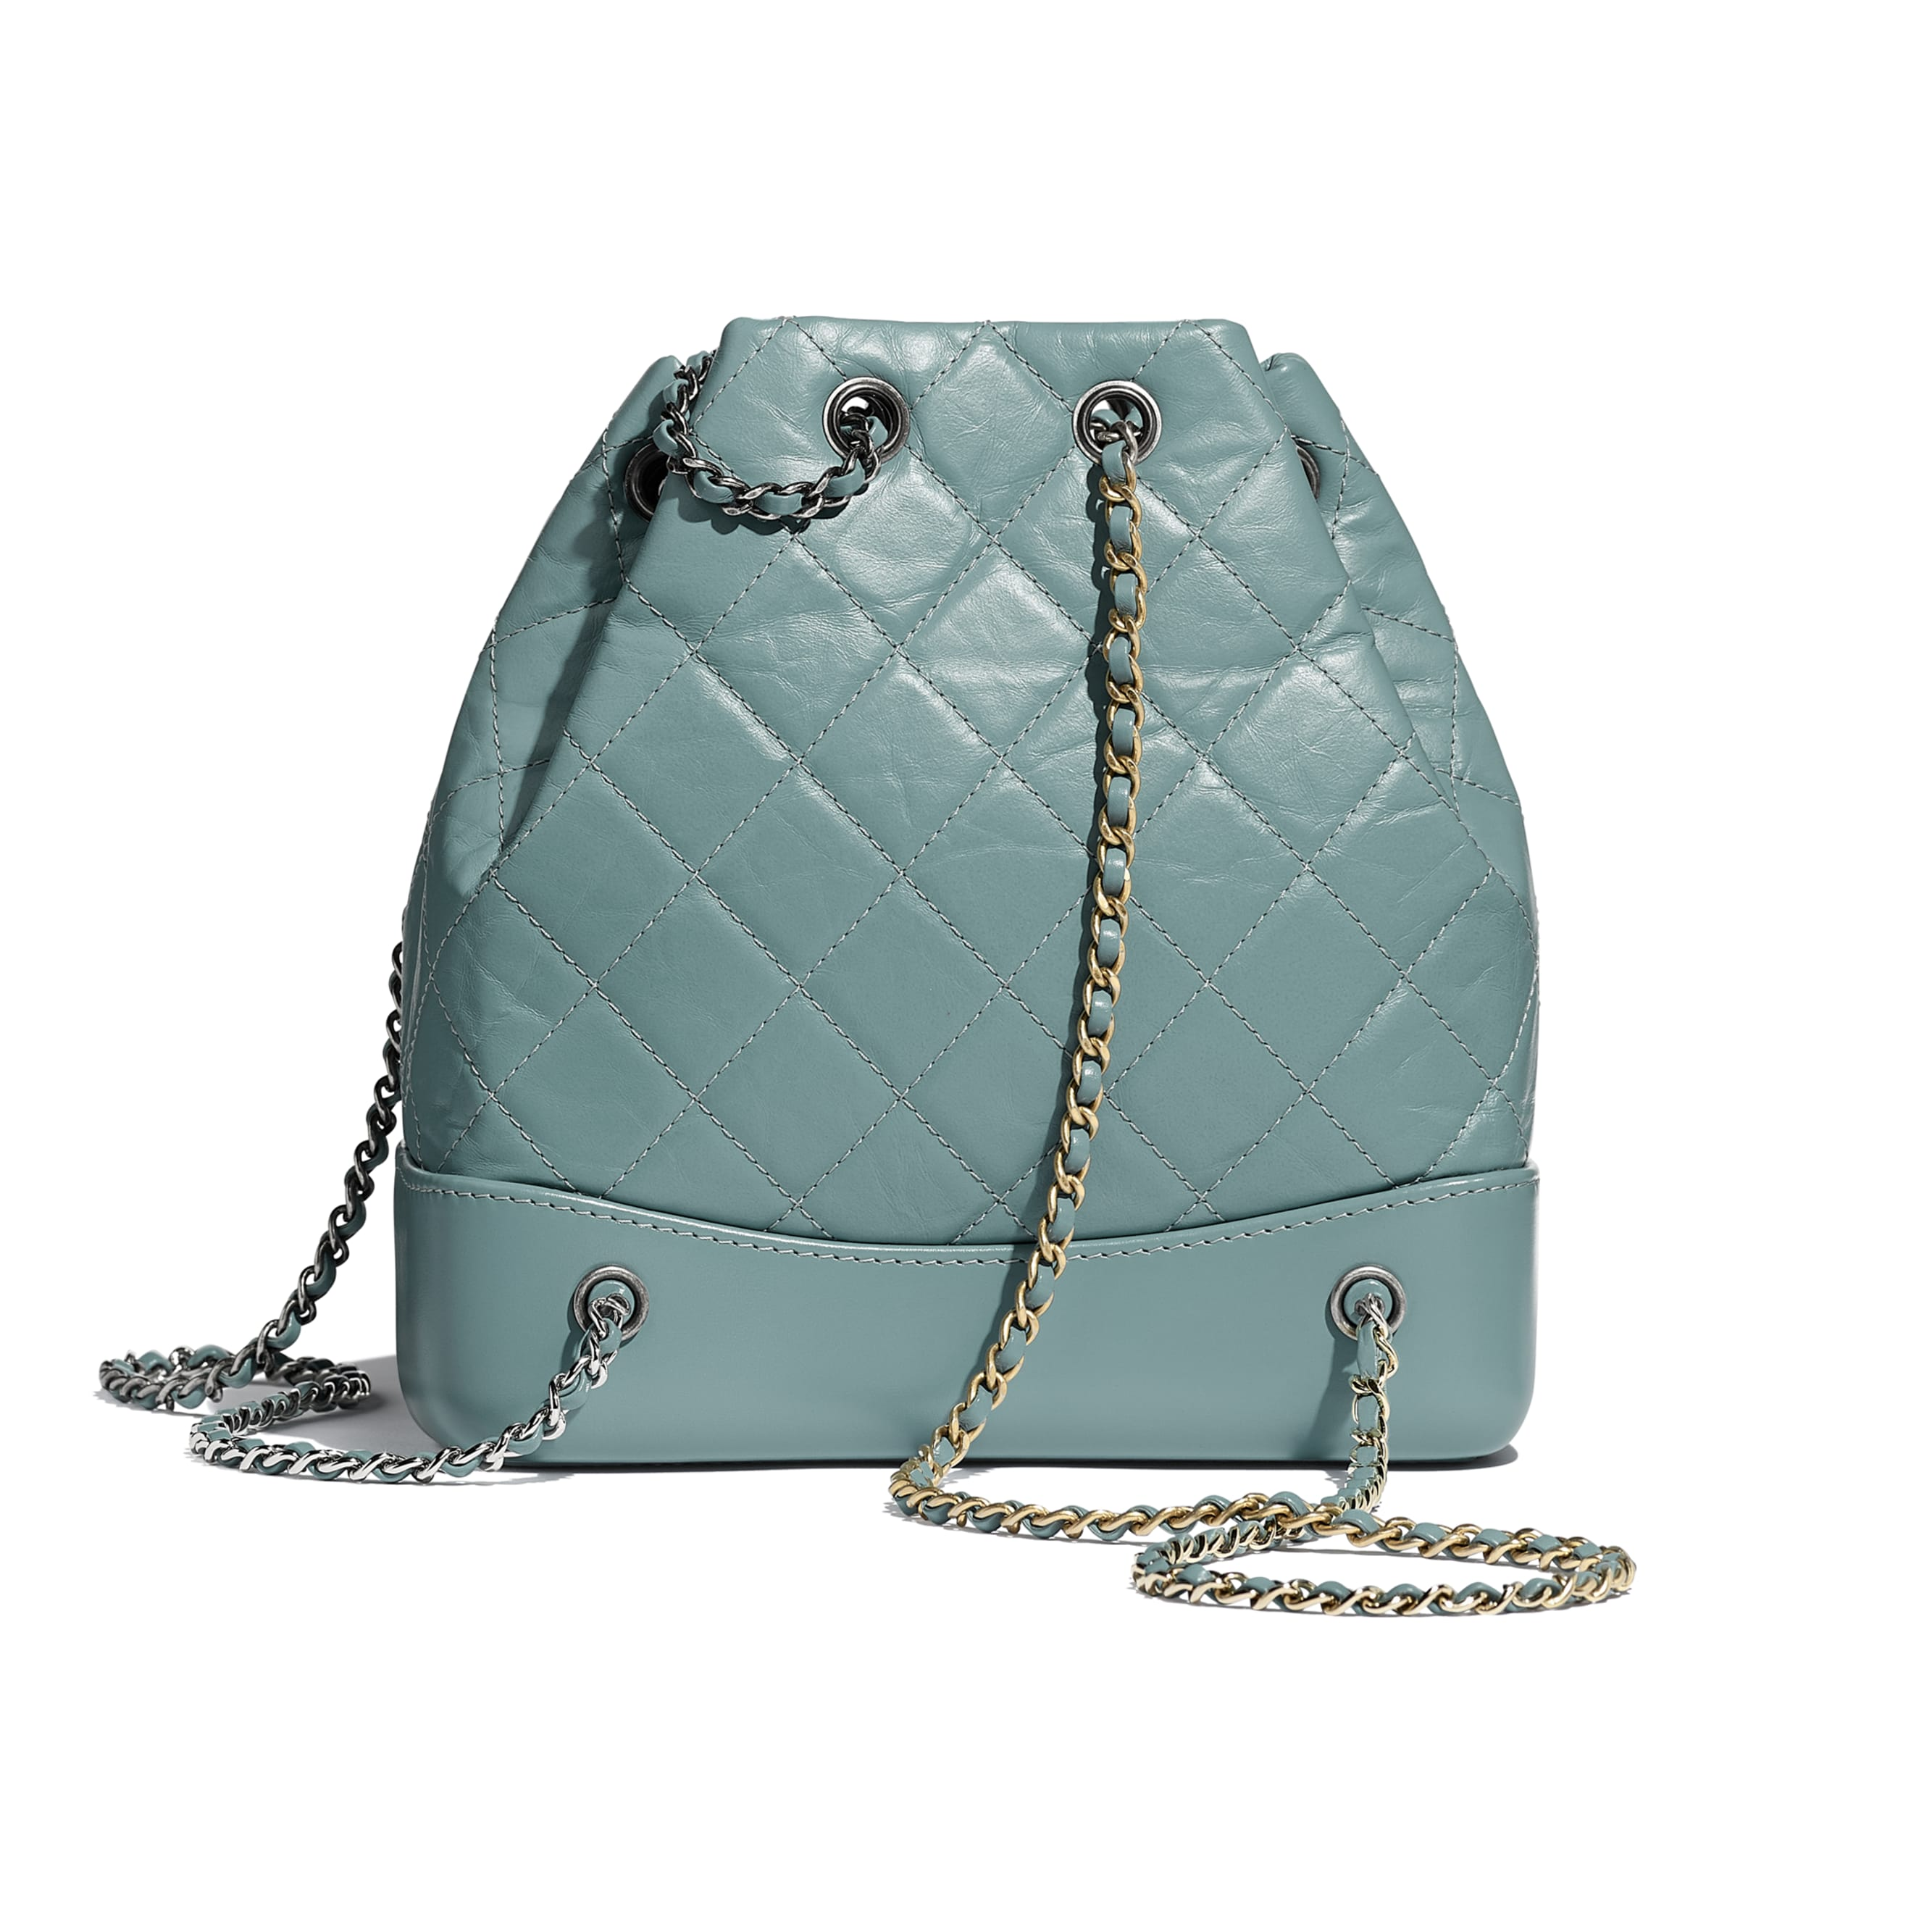 CHANEL'S GABRIELLE Small Backpack - Blue - Aged Calfskin, Smooth Calfskin, Silver-Tone & Gold-Tone Metal - Alternative view - see standard sized version